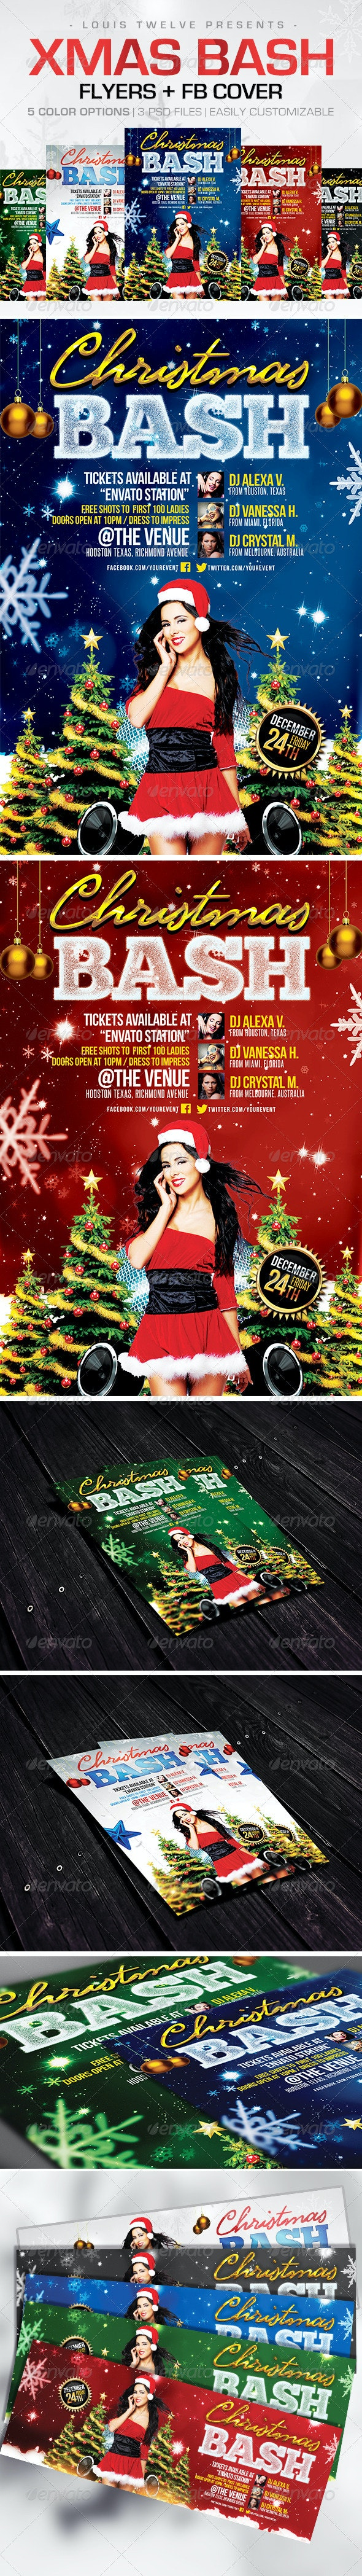 Christmas Bash | Flyers + FB Cover - Holidays Events